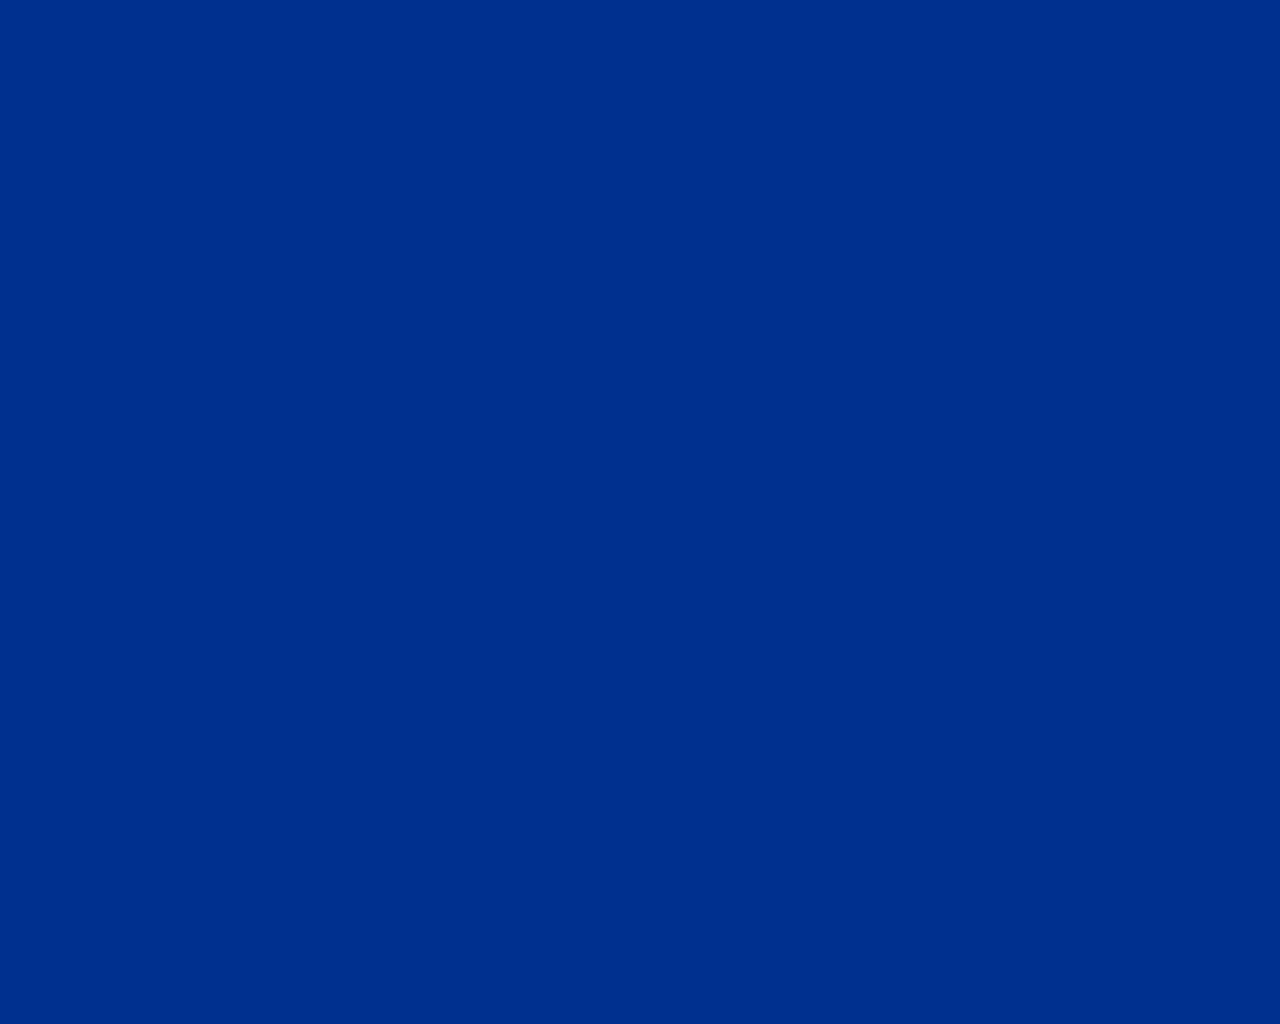 1280x1024 Air Force Dark Blue Solid Color Background